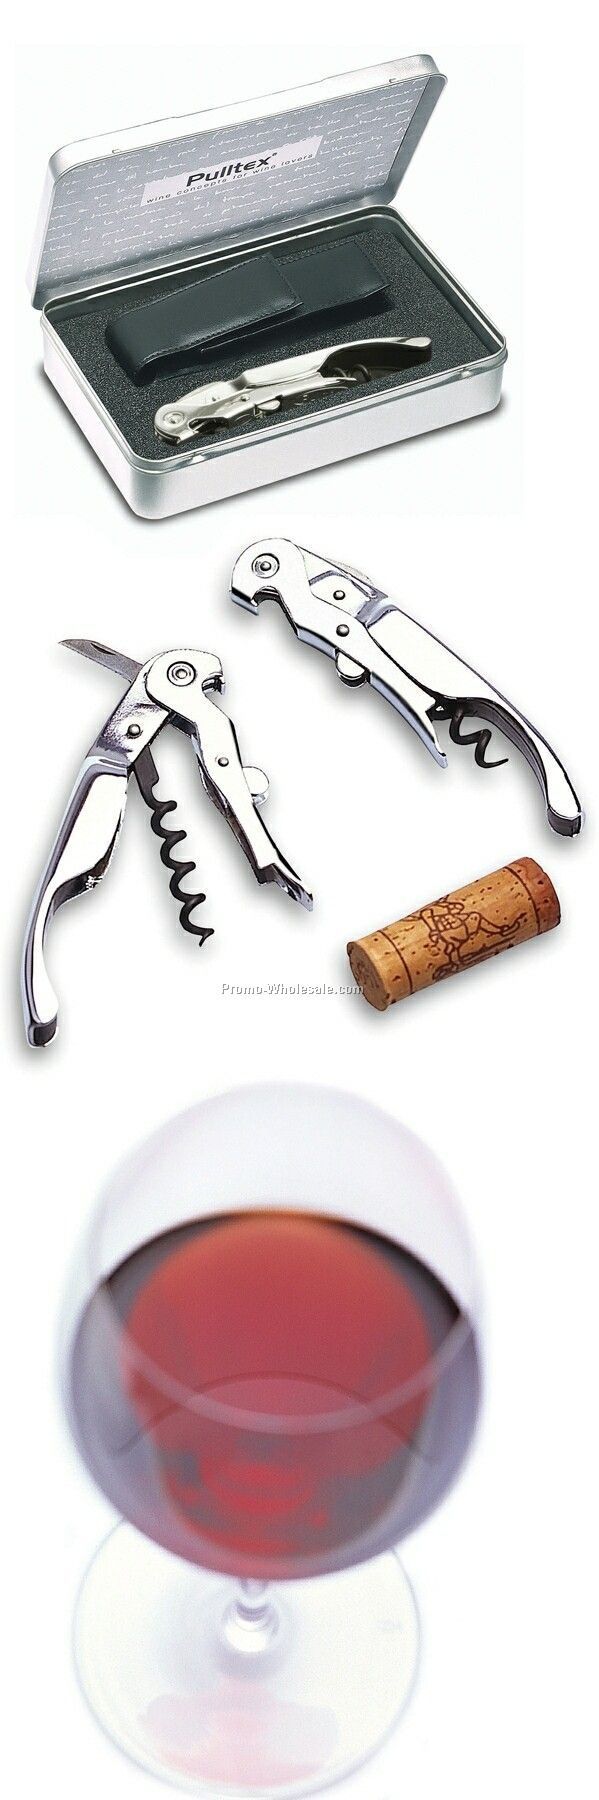 Pulltex Pullparrot Corkscrew With Leather Case